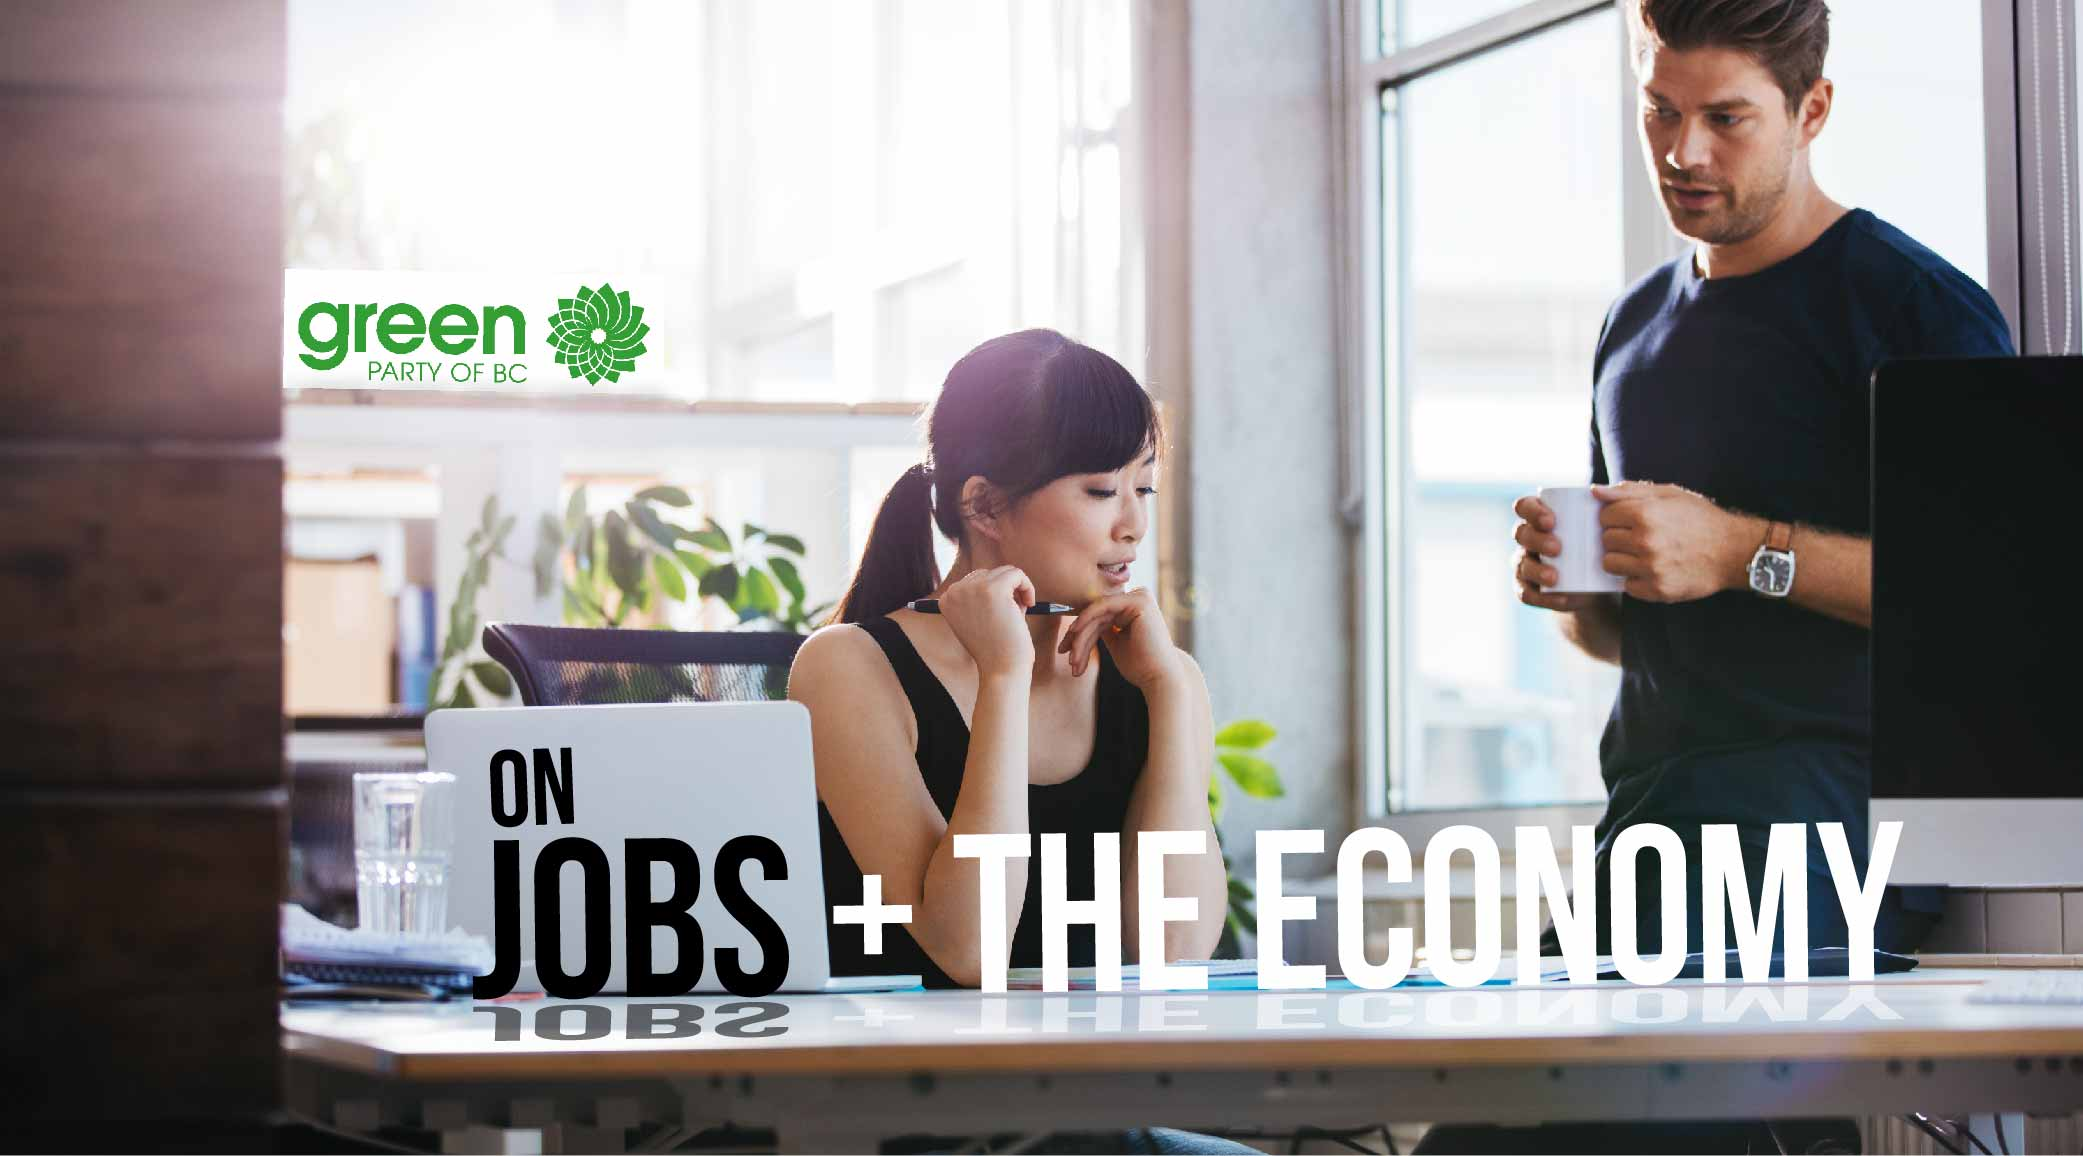 BC Election 2017: BC Greens and jobs and the economy in detail